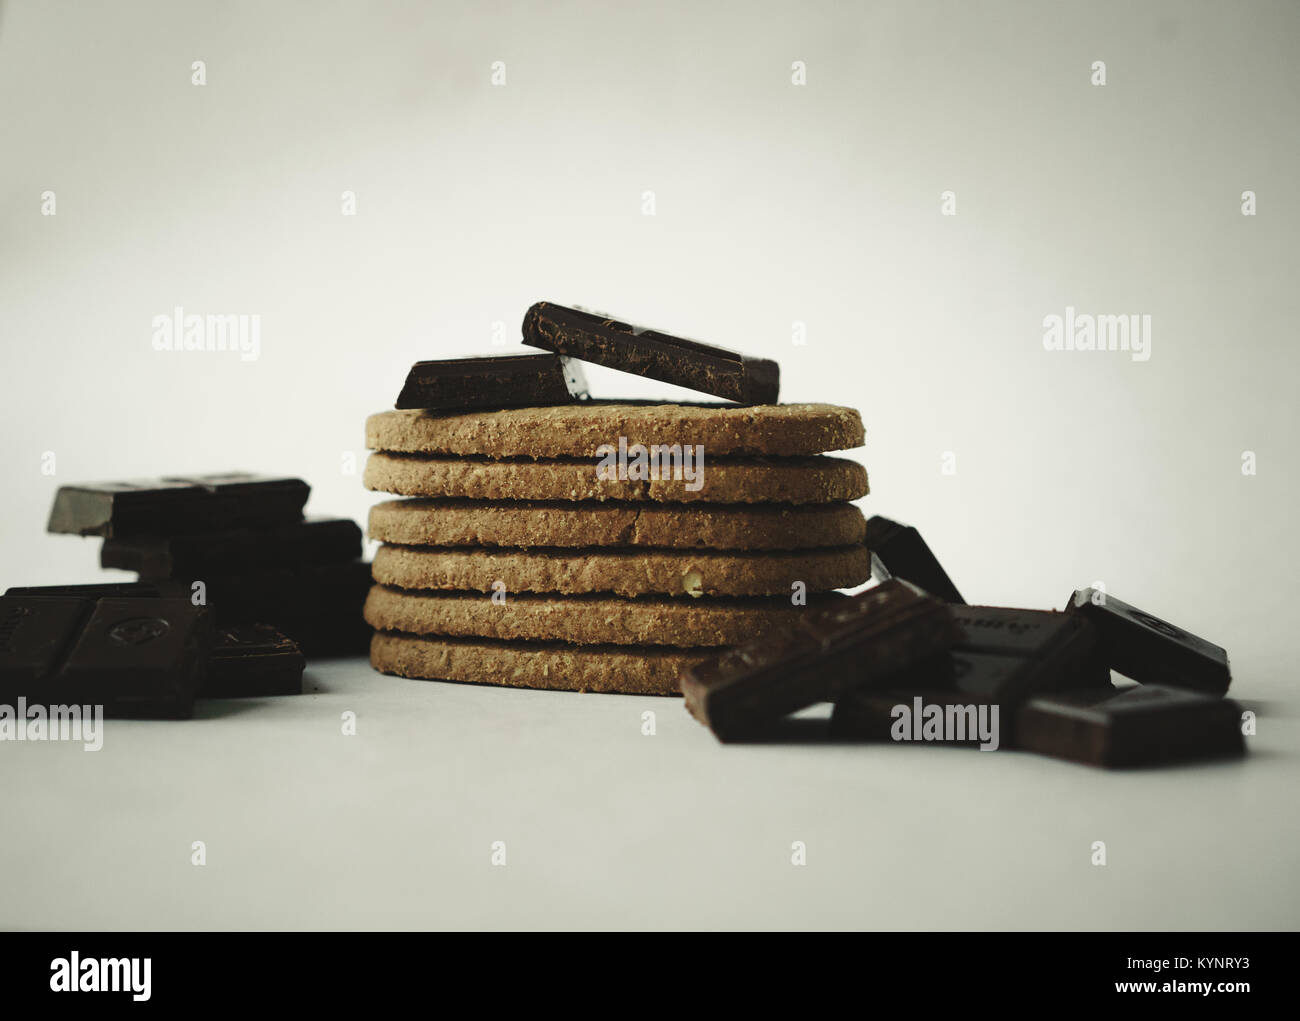 Time For Some Chocolates & Cookies! - Stock Image